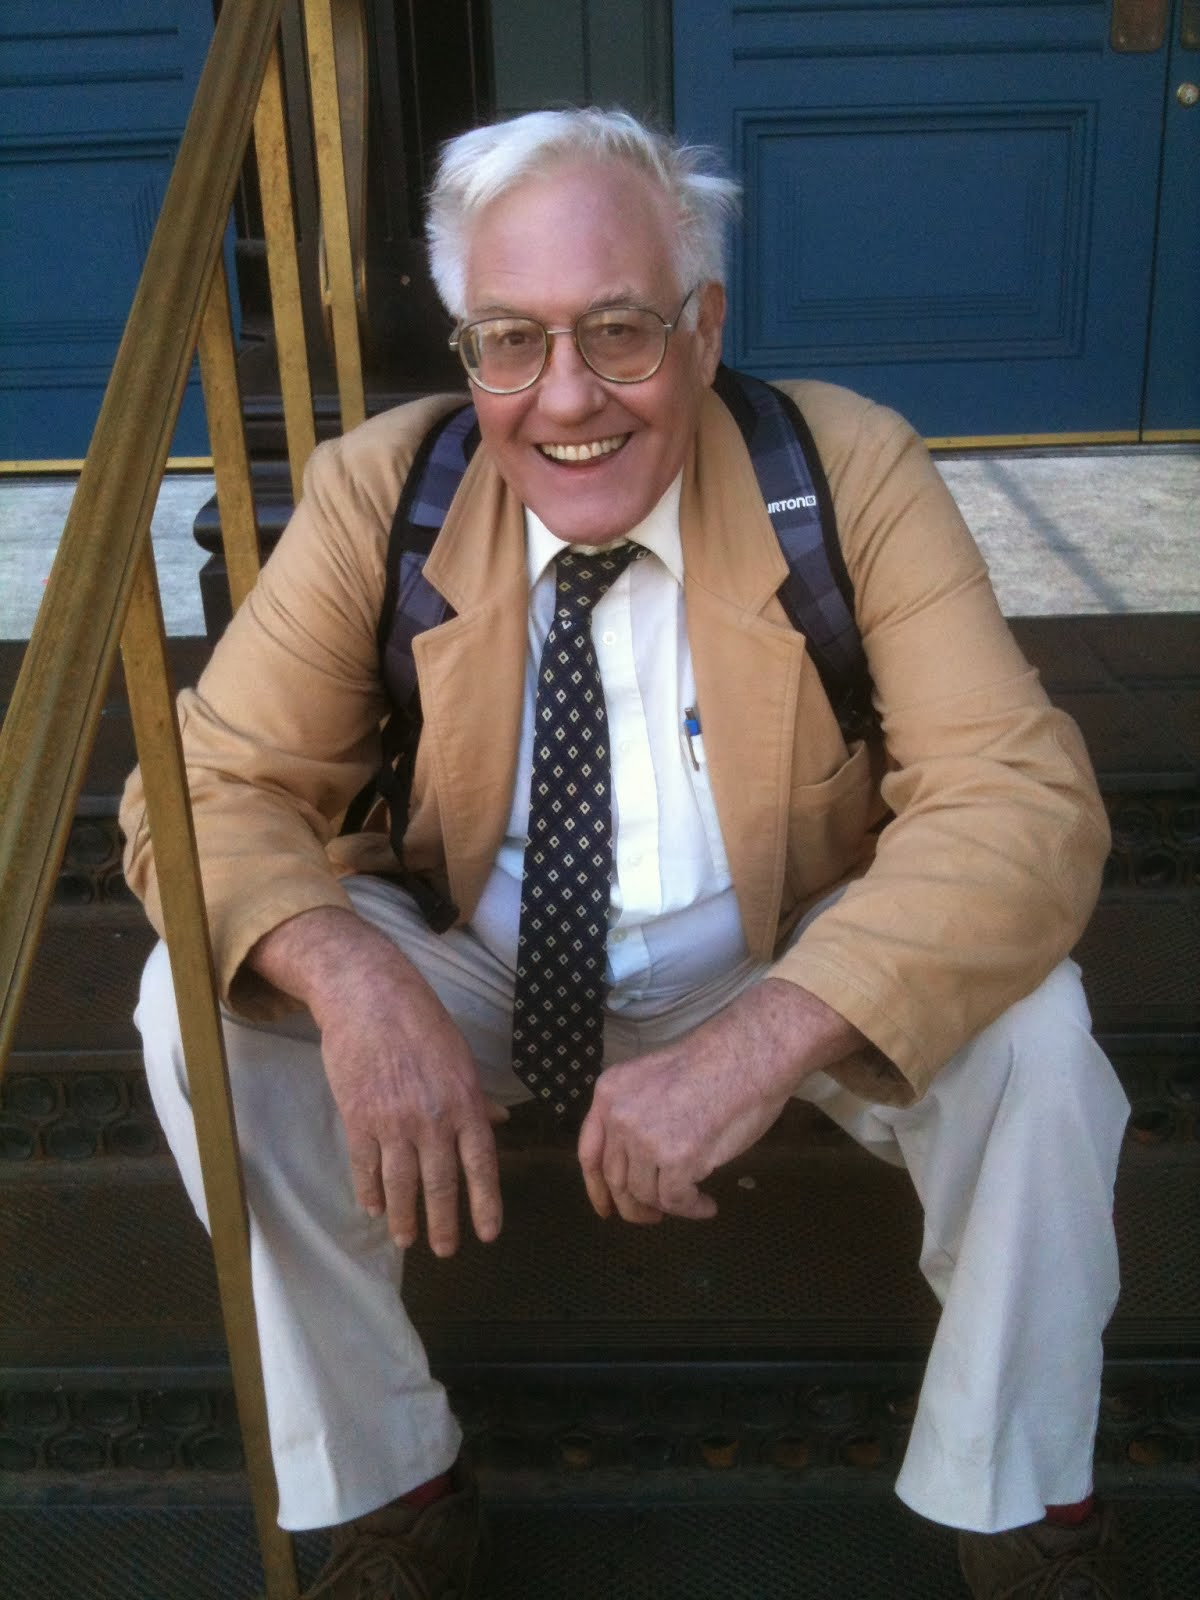 Stephen Douglass Kindred, 1944-2013